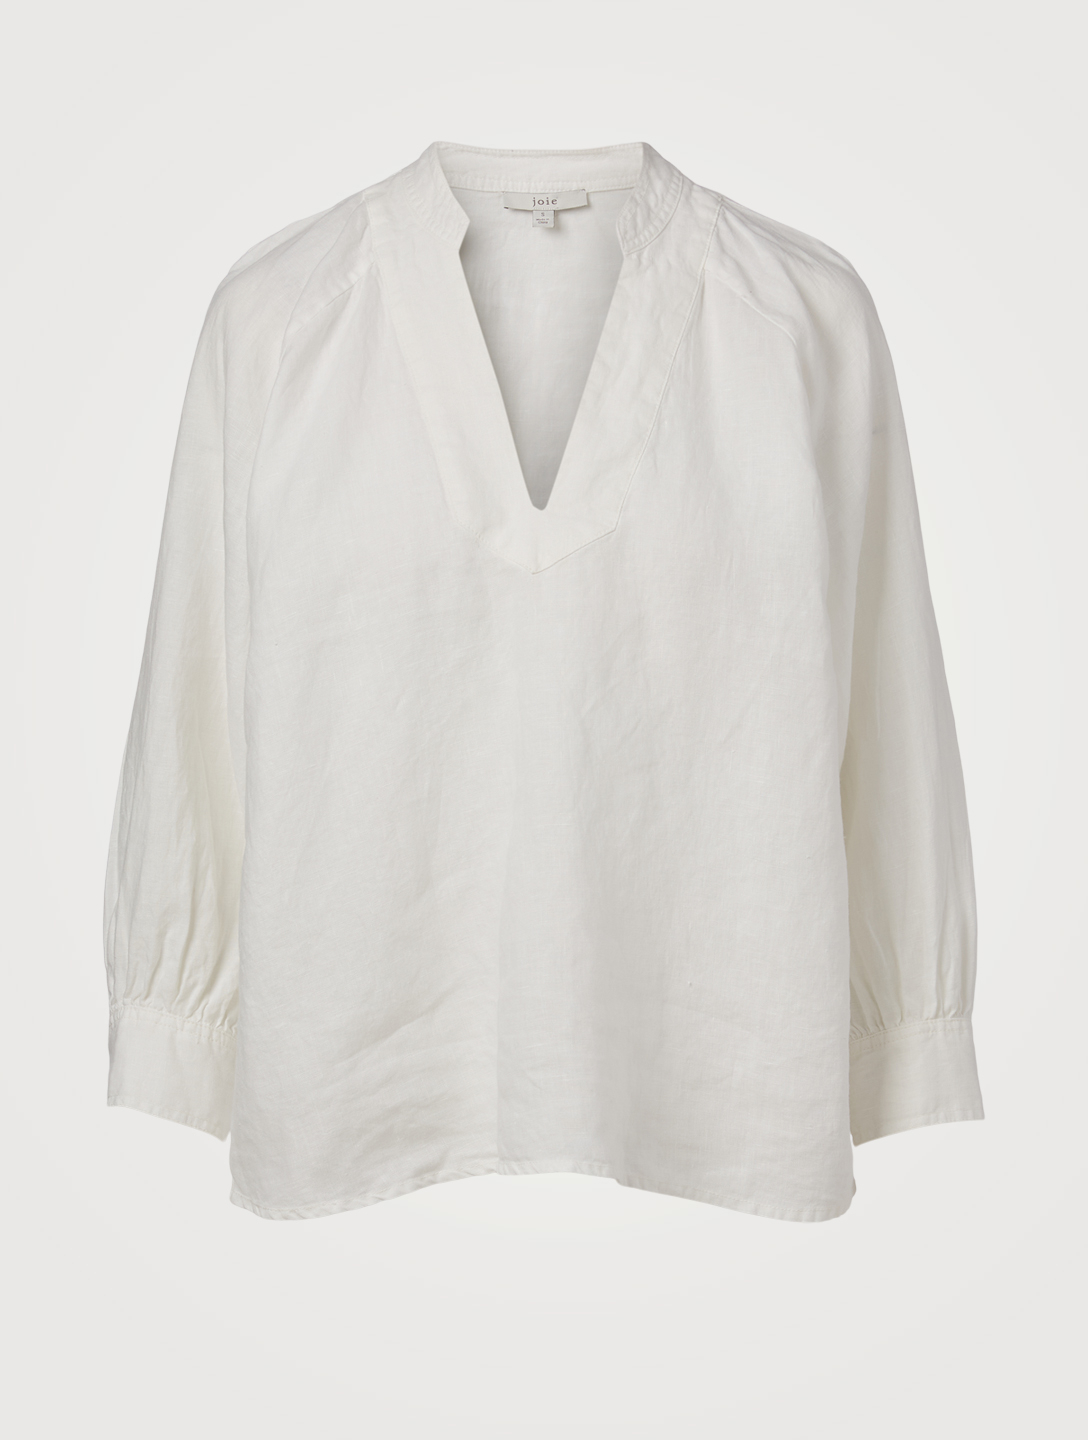 JOIE Perci Linen Top Women's White